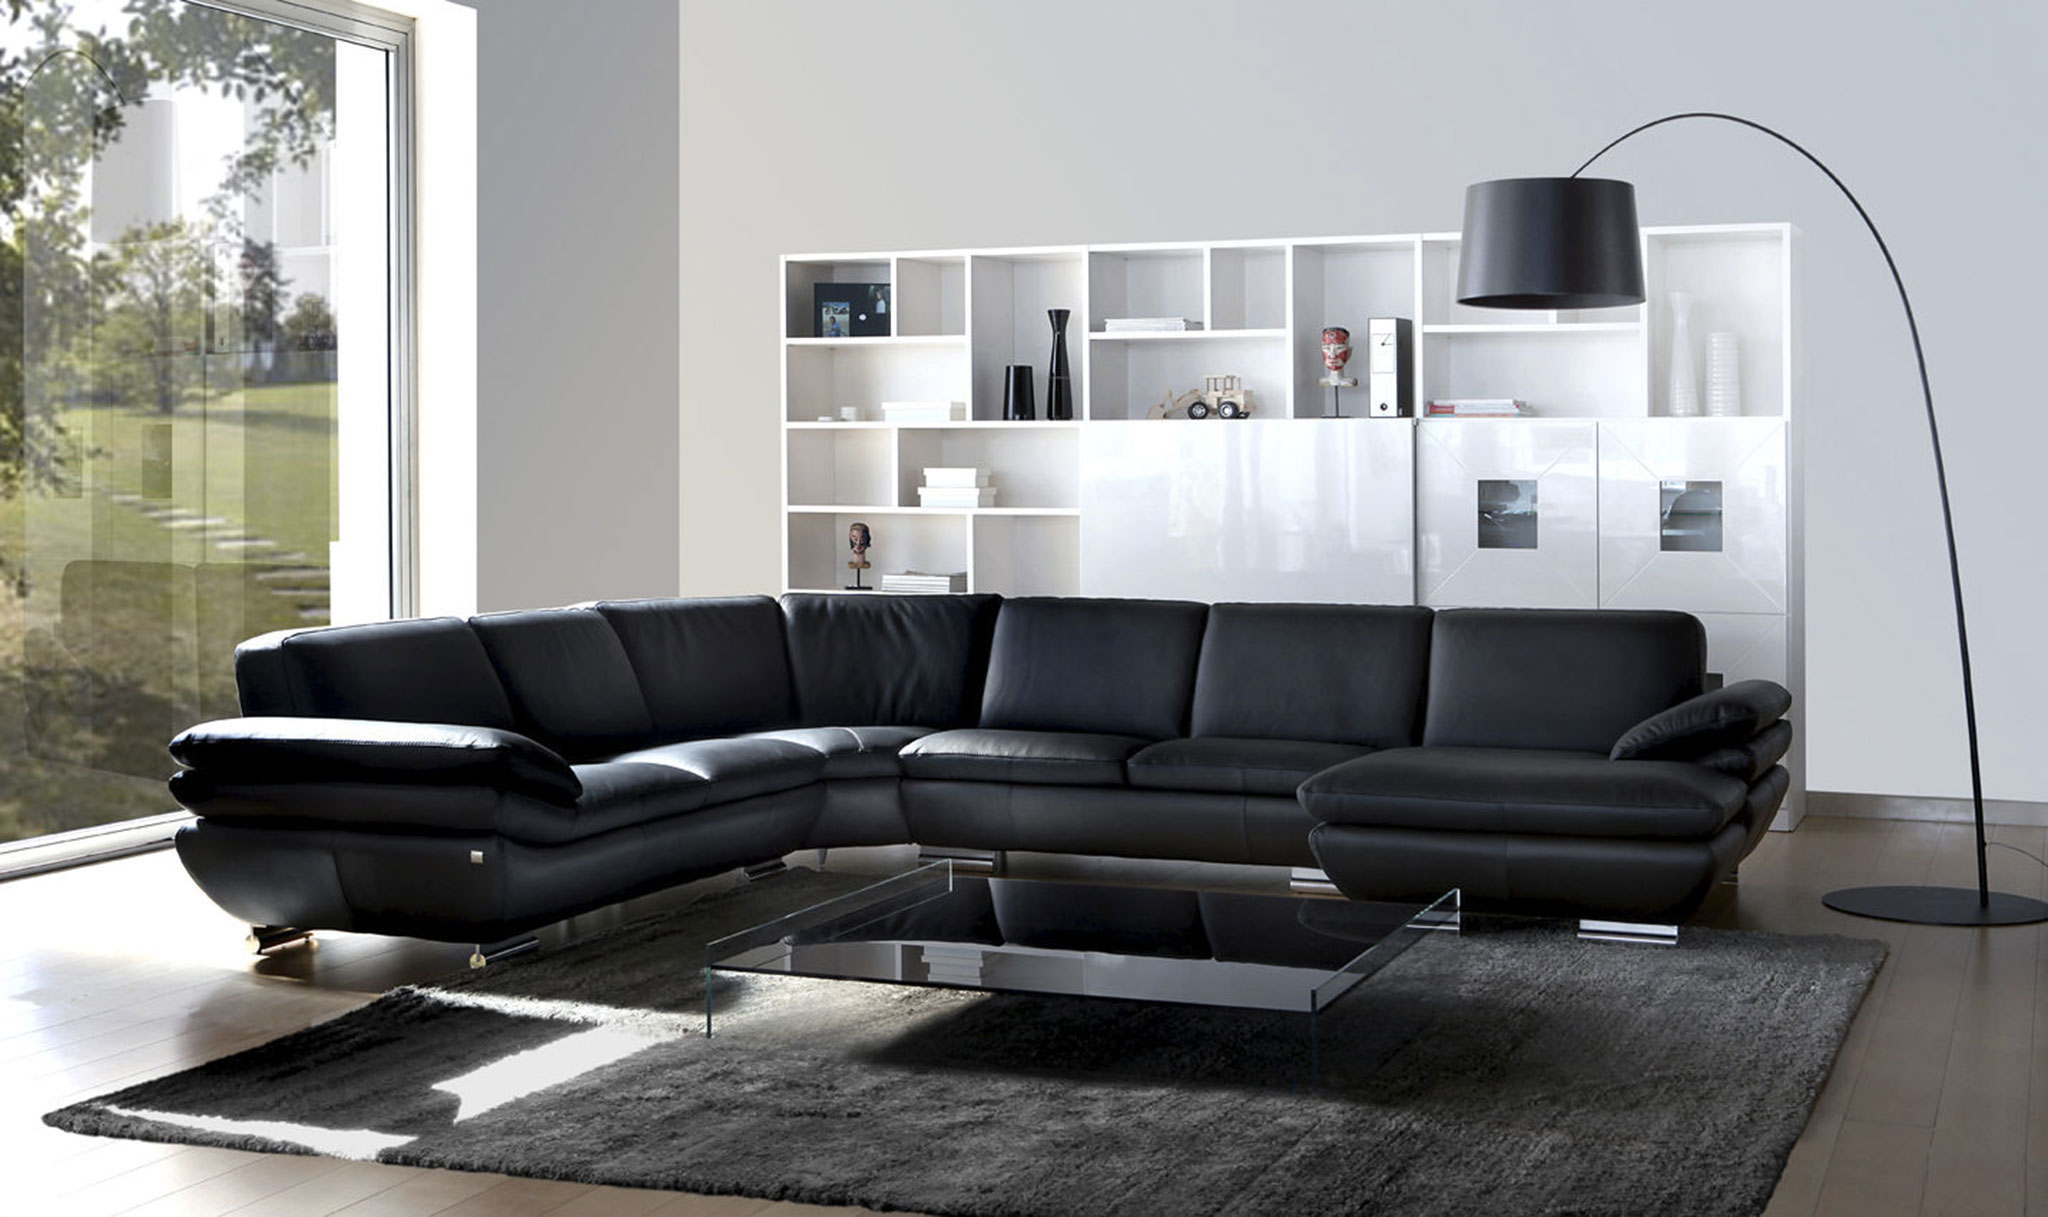 salon d angle en cuir pas cher royal sofa id e de canap et meuble maison. Black Bedroom Furniture Sets. Home Design Ideas